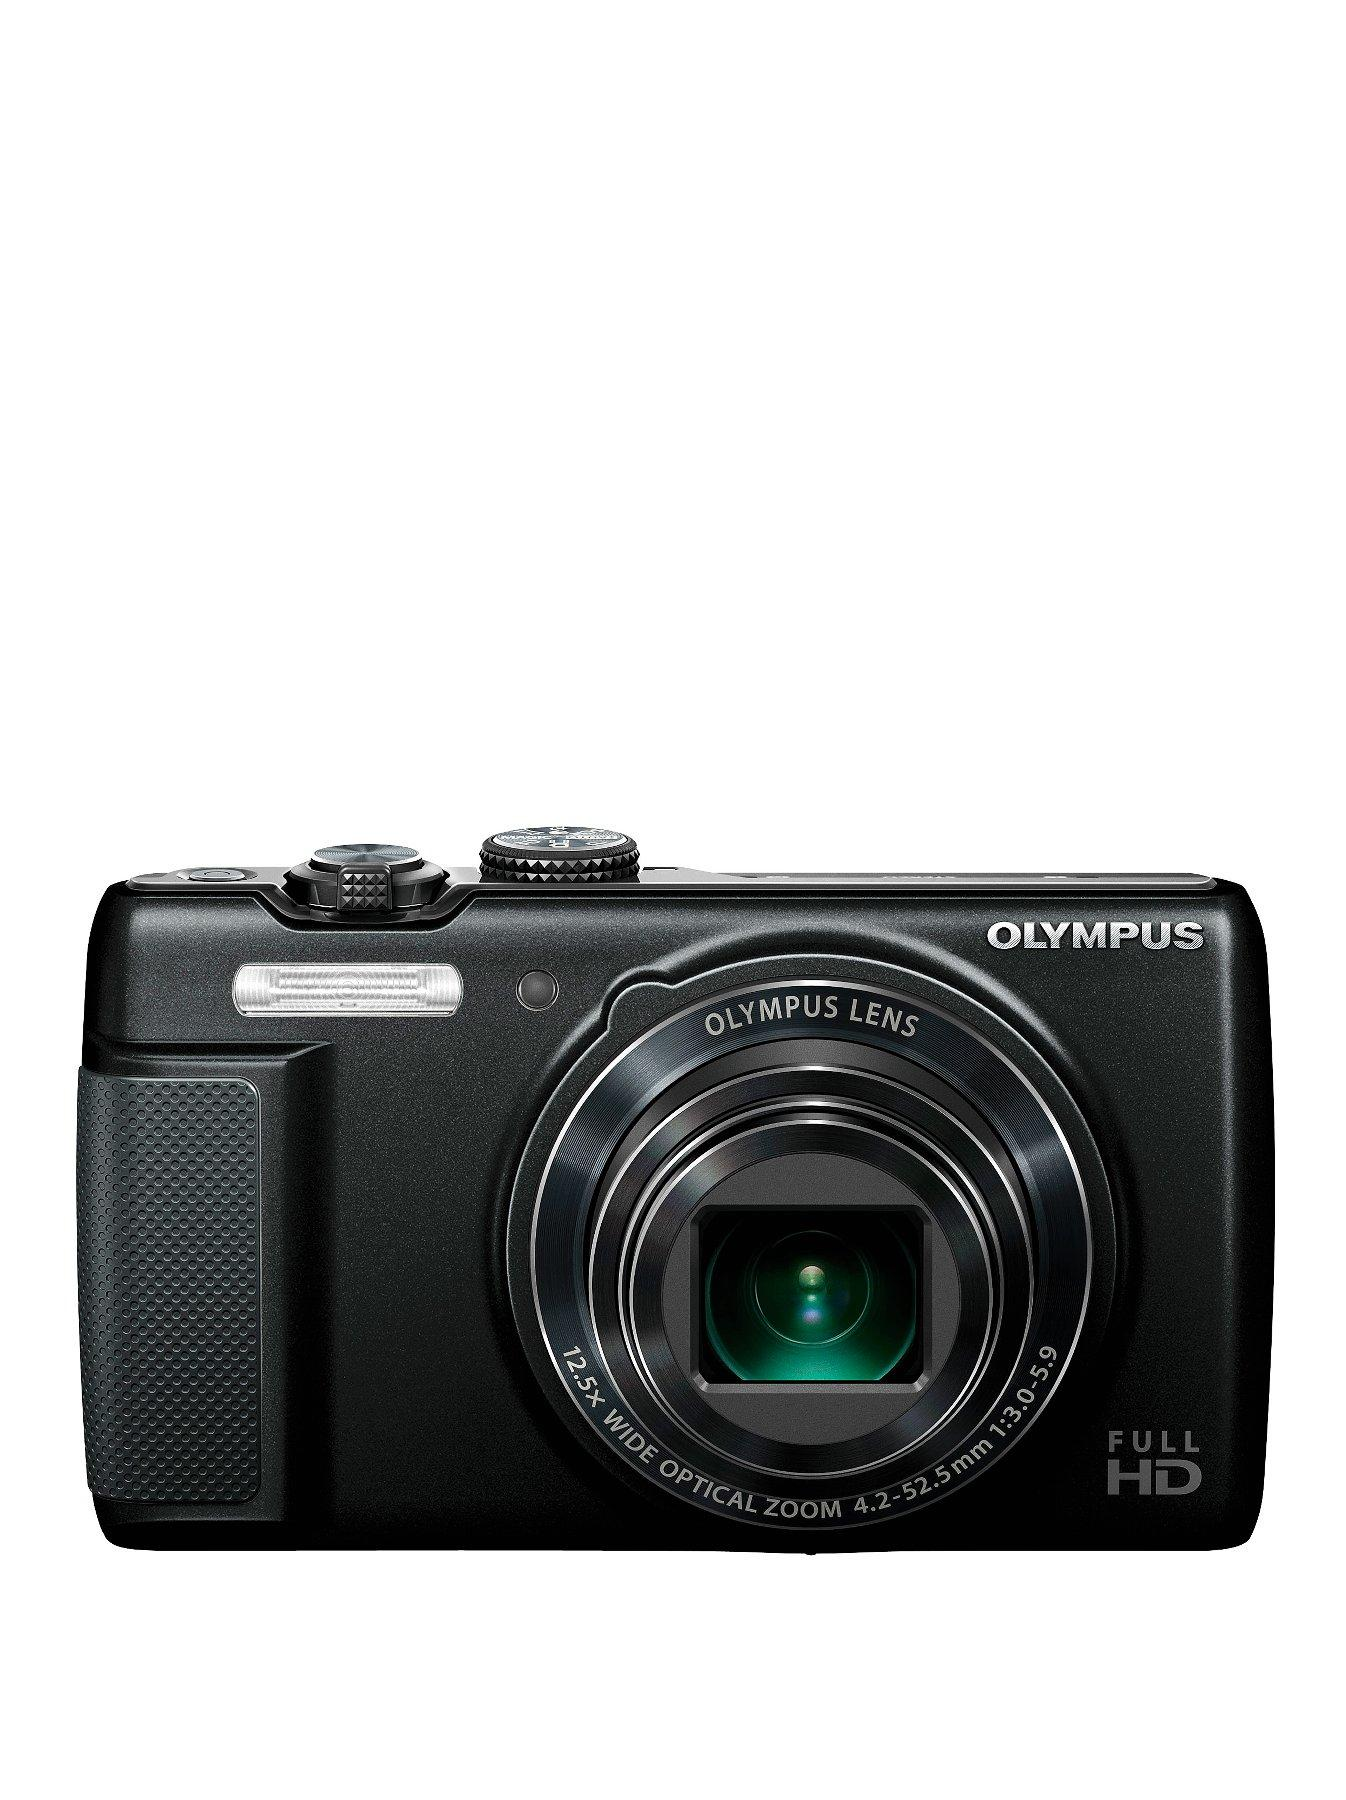 SH-21 16 Megapixel Digital Camera - Black